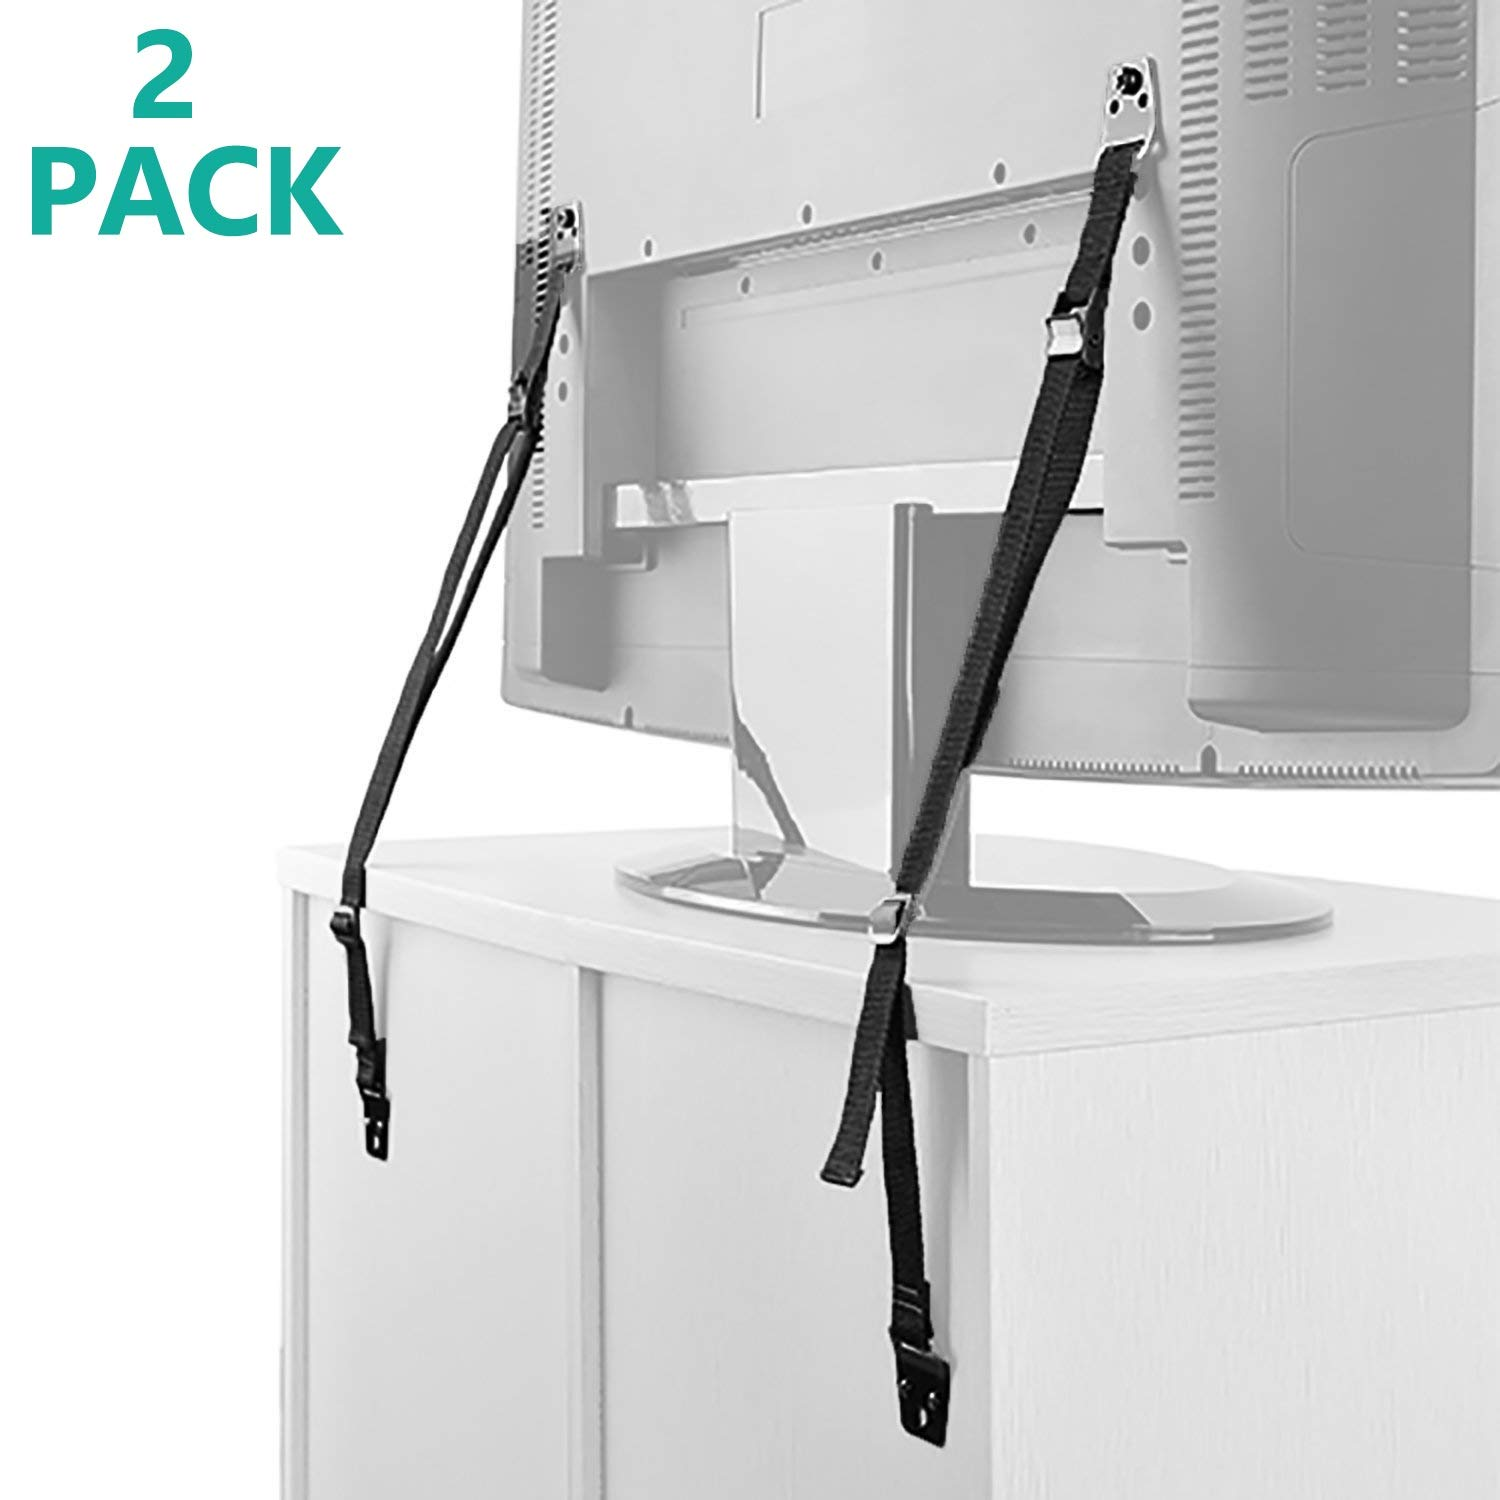 WALI Anti-Tip Heavy Duty Straps Safety Protection Fit Most Flat Screen TVs and Furniture, 2 Pack, Black